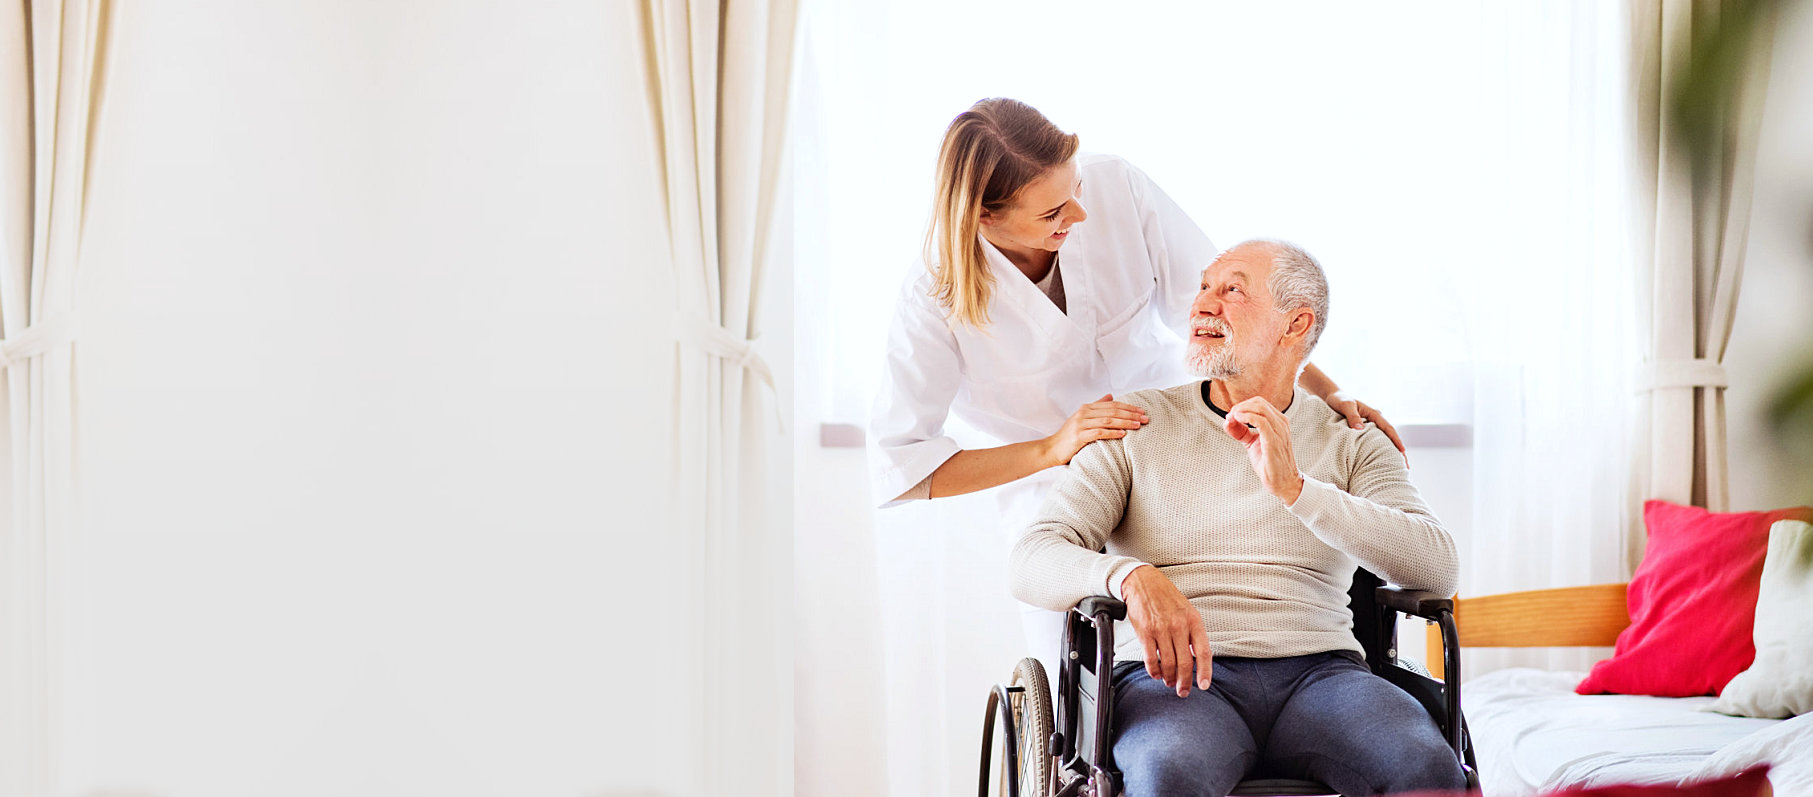 A caregiver and an elderly